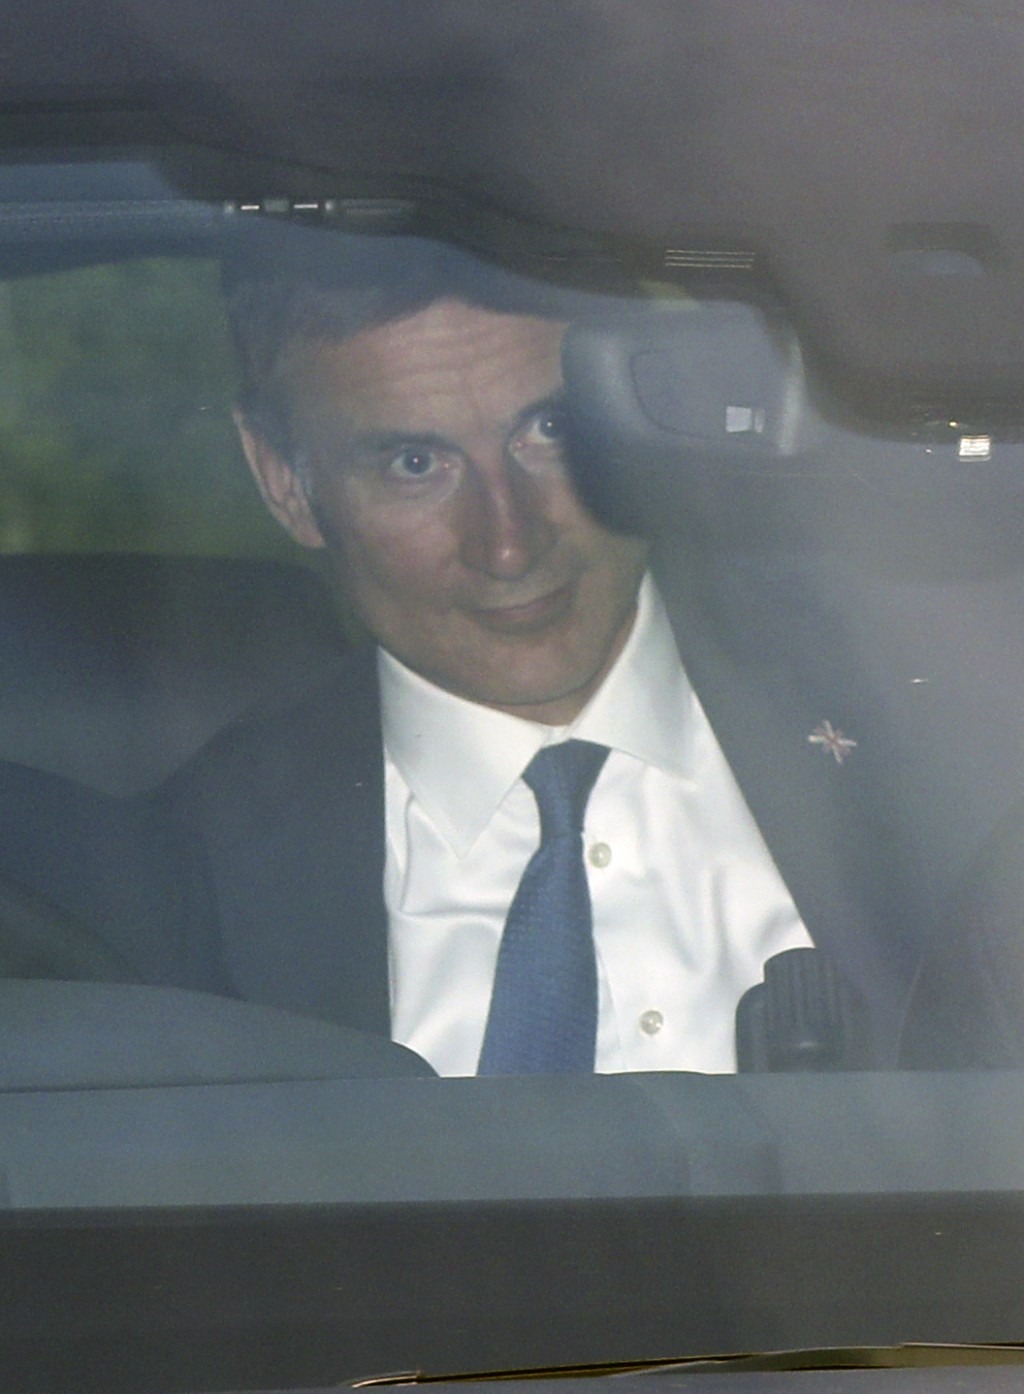 Conservative party leadership contender Jeremy Hunt arrives at the television studios ahead of a scheduled live television debate for the Conservative